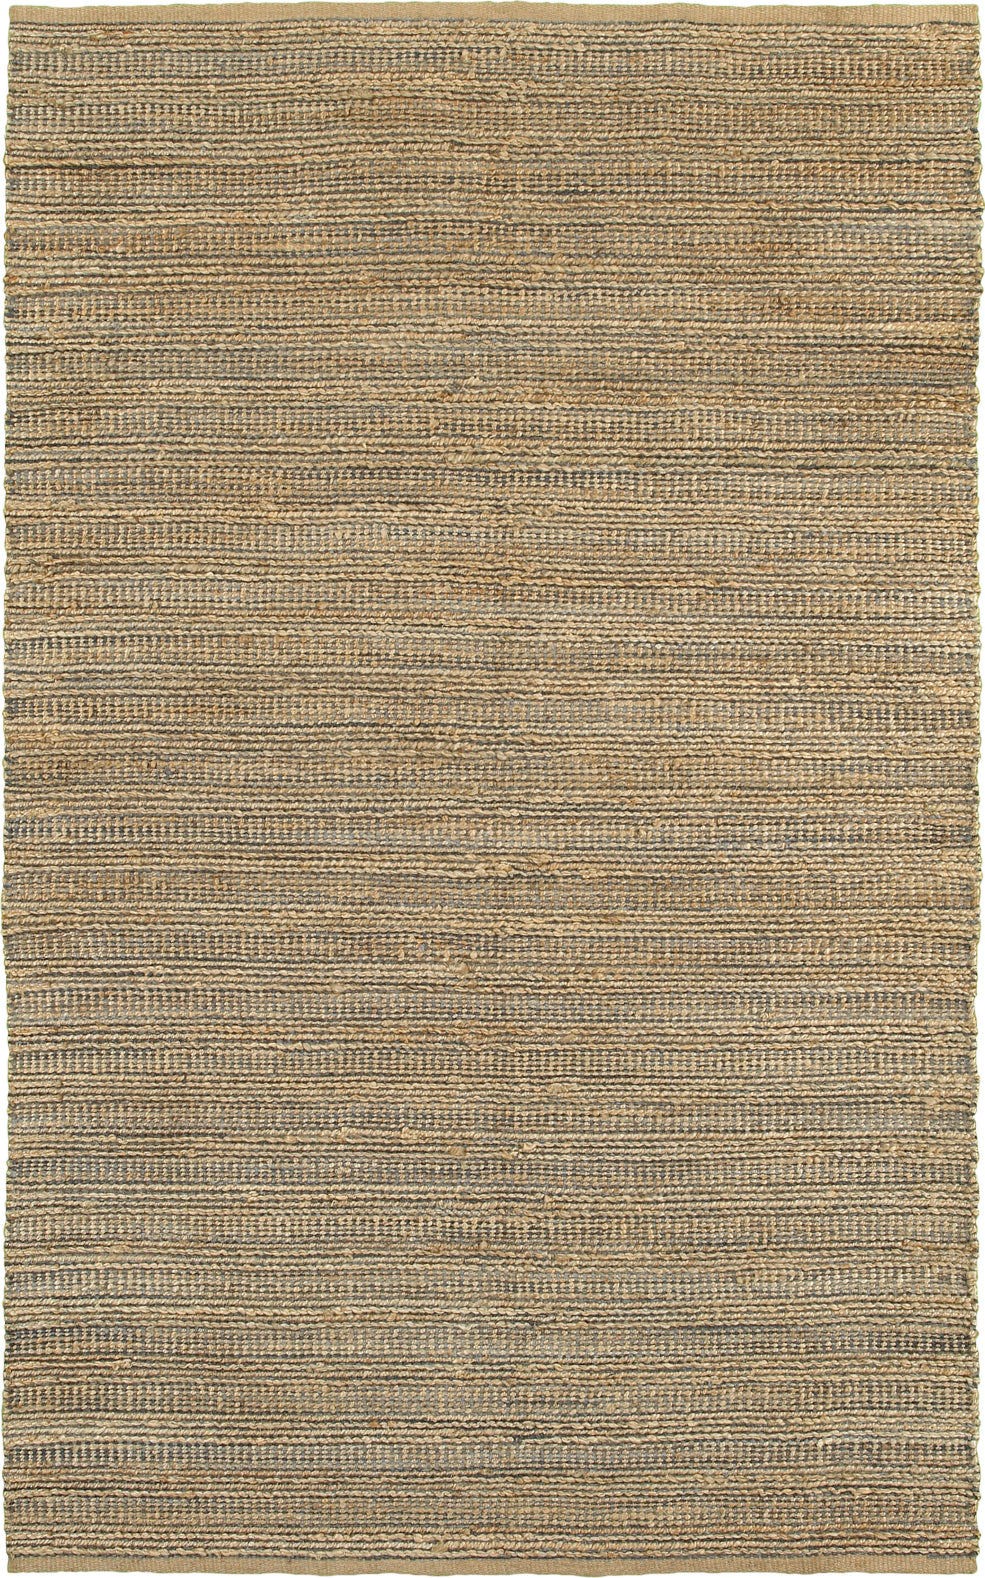 LR Resources Natural Fiber 3336 Gray Area Rug main image